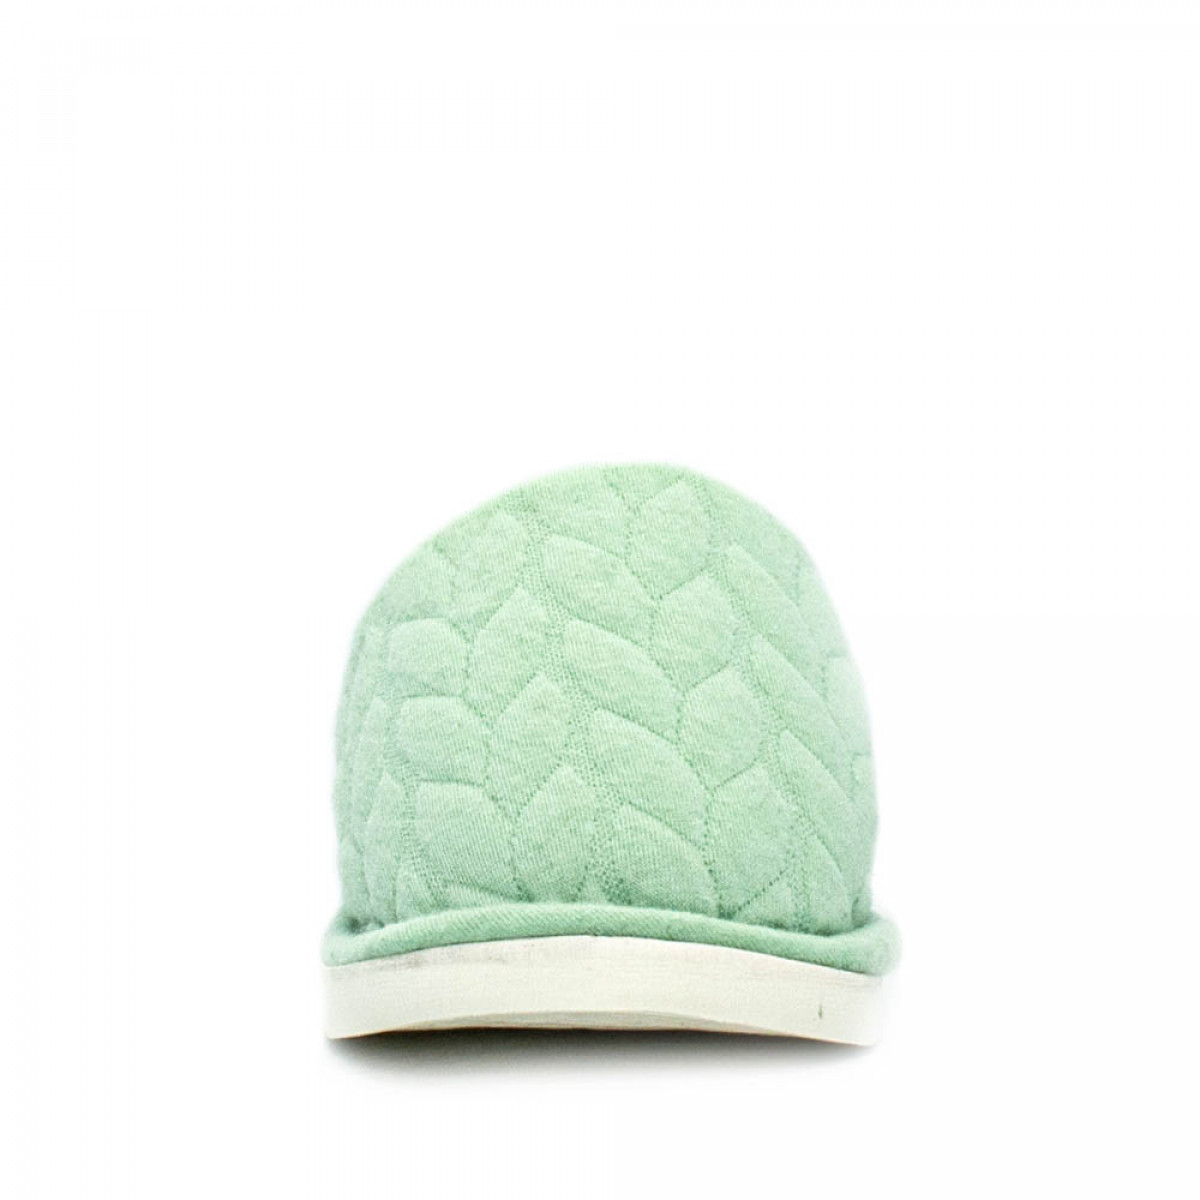 Kid's home slippers FAMILY, Mint